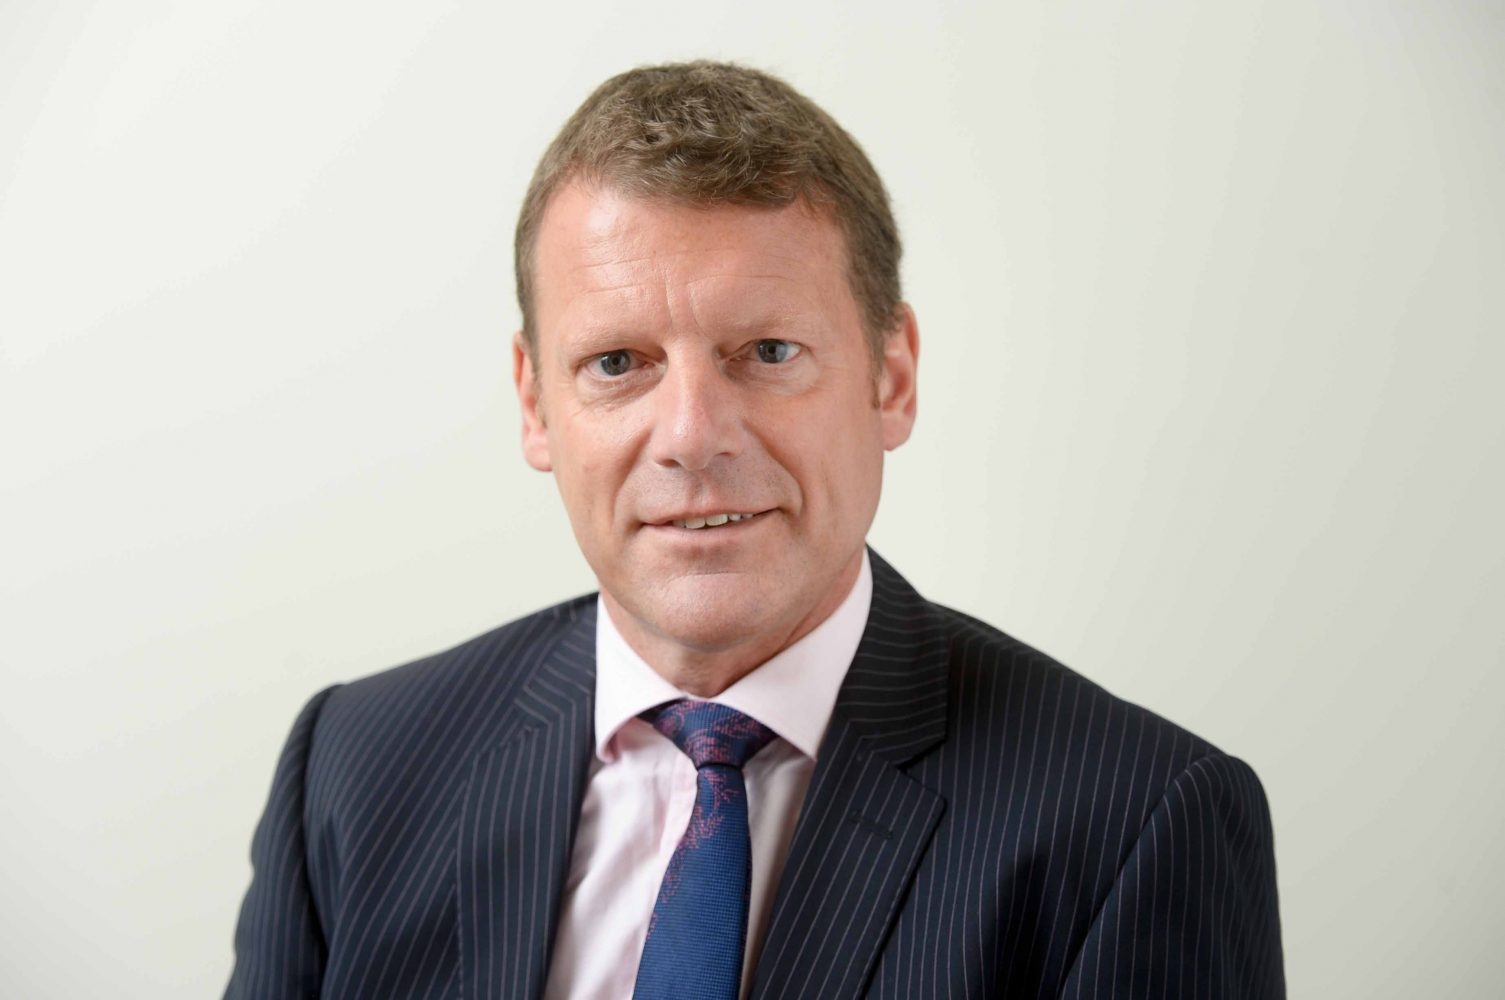 A headshot of Paul Taberner the Investment Director at Enterprise Ventures